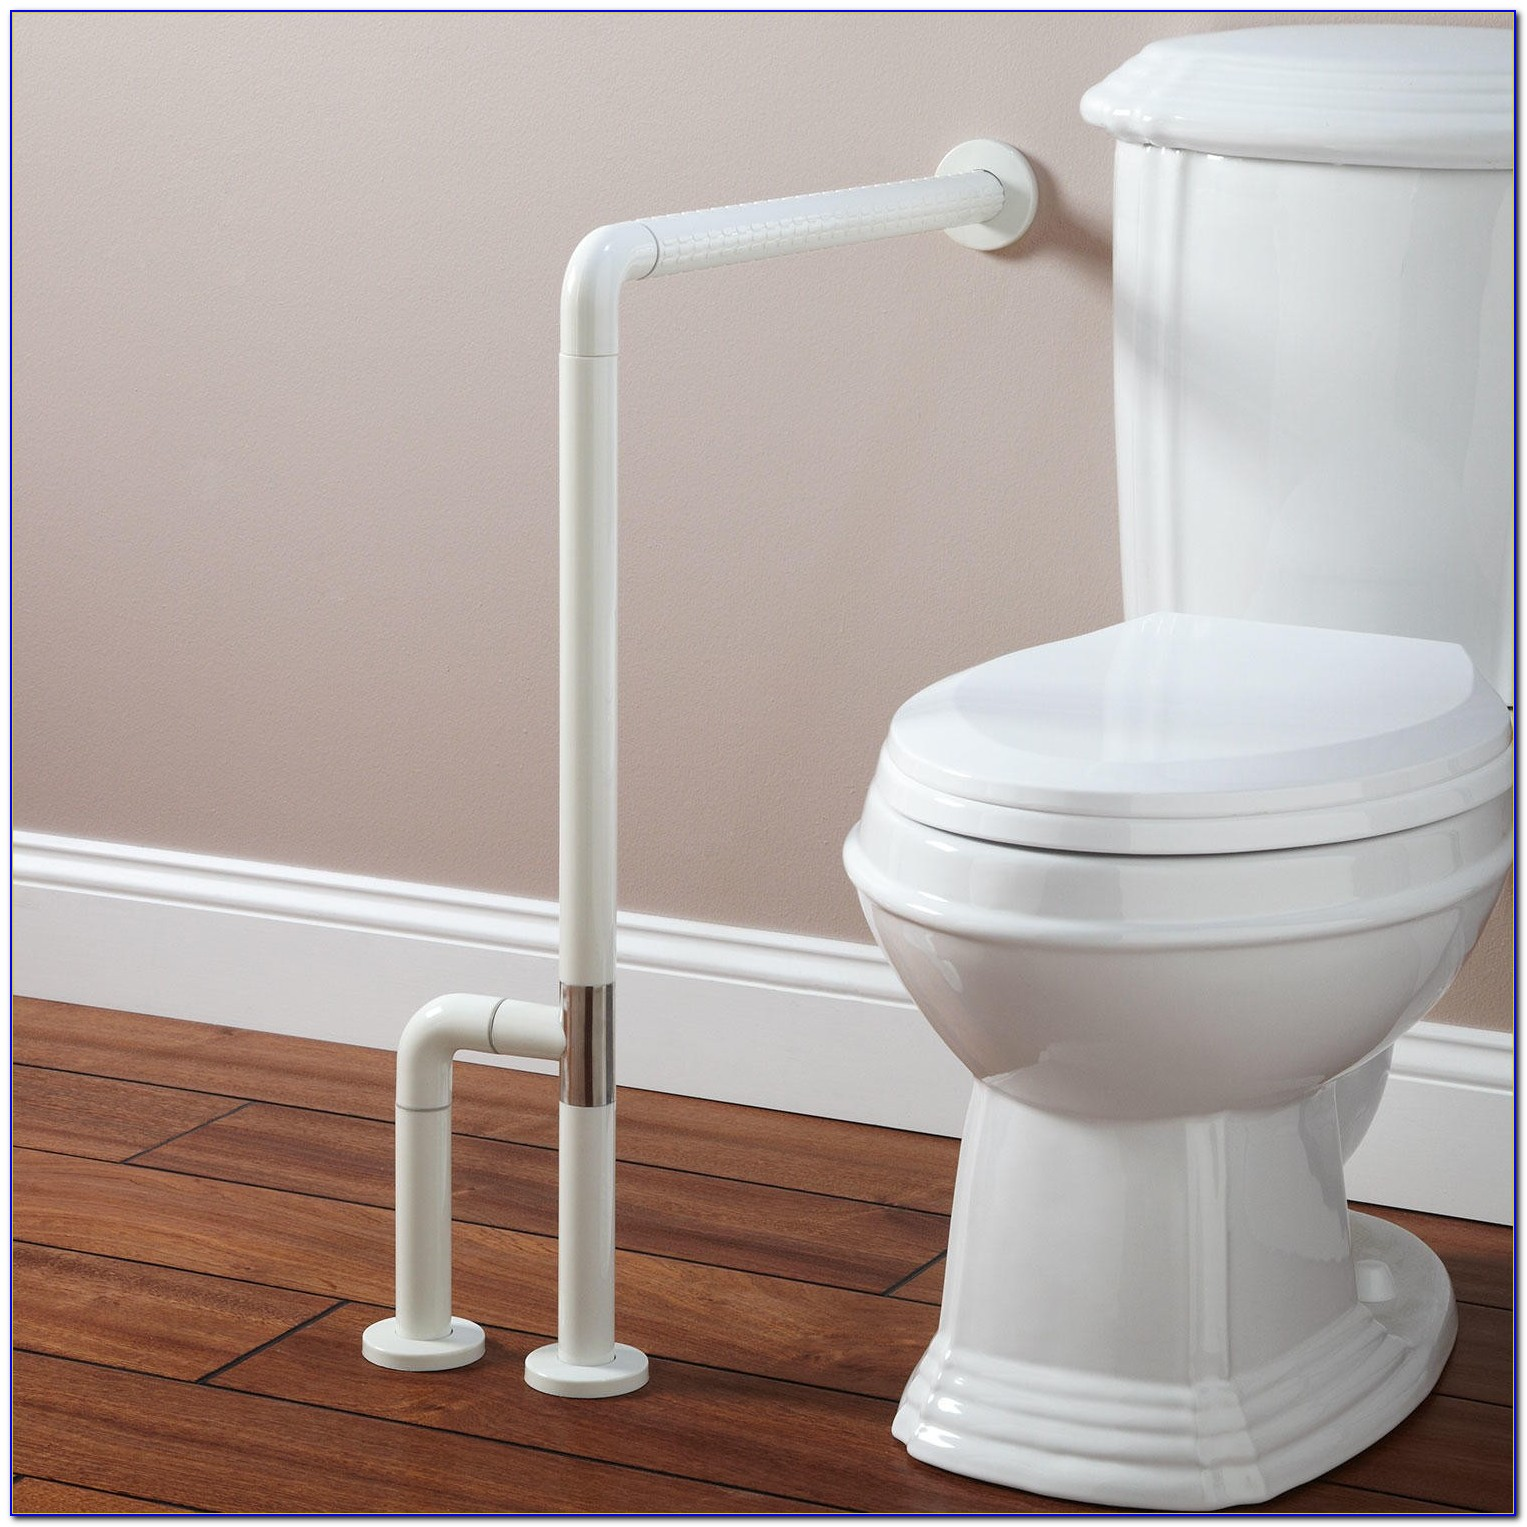 Floor Mounted Fold Down Grab Bars